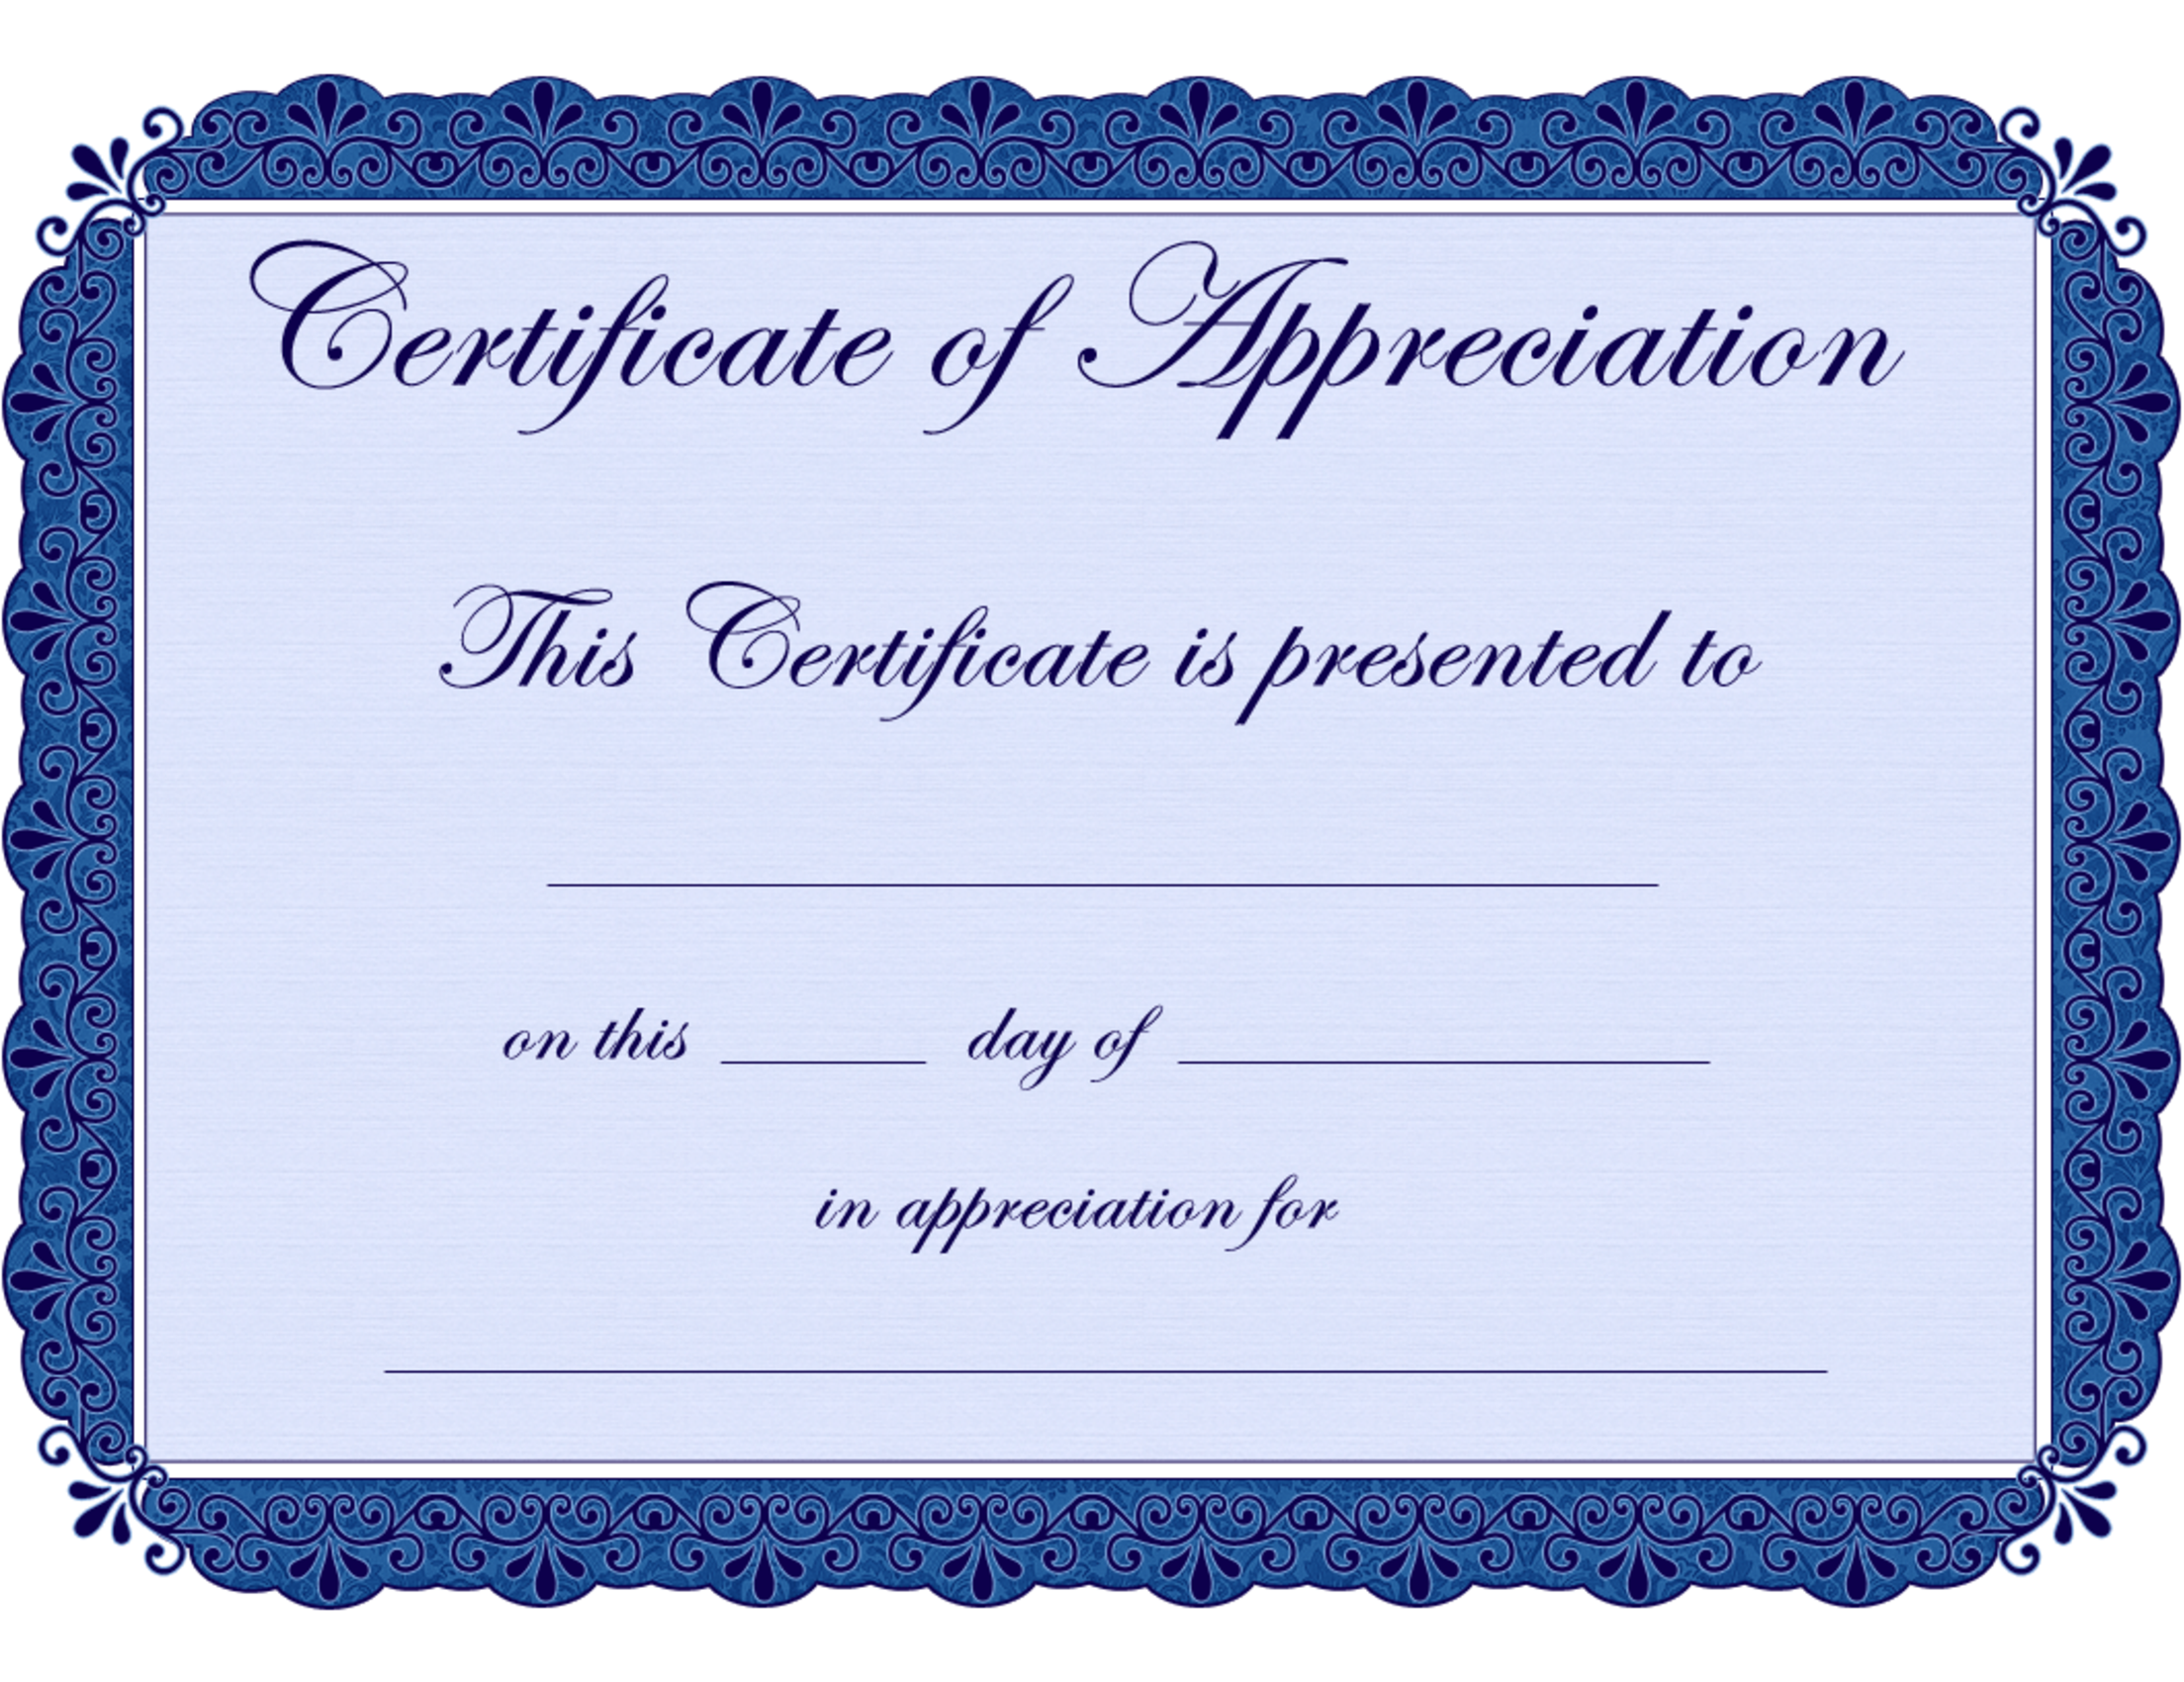 Free Printable Certificates Certificate Of Appreciation Certificate ...  Free Gift Certificate TemplateFree Printable CertificatesAward ...  Award Word Template